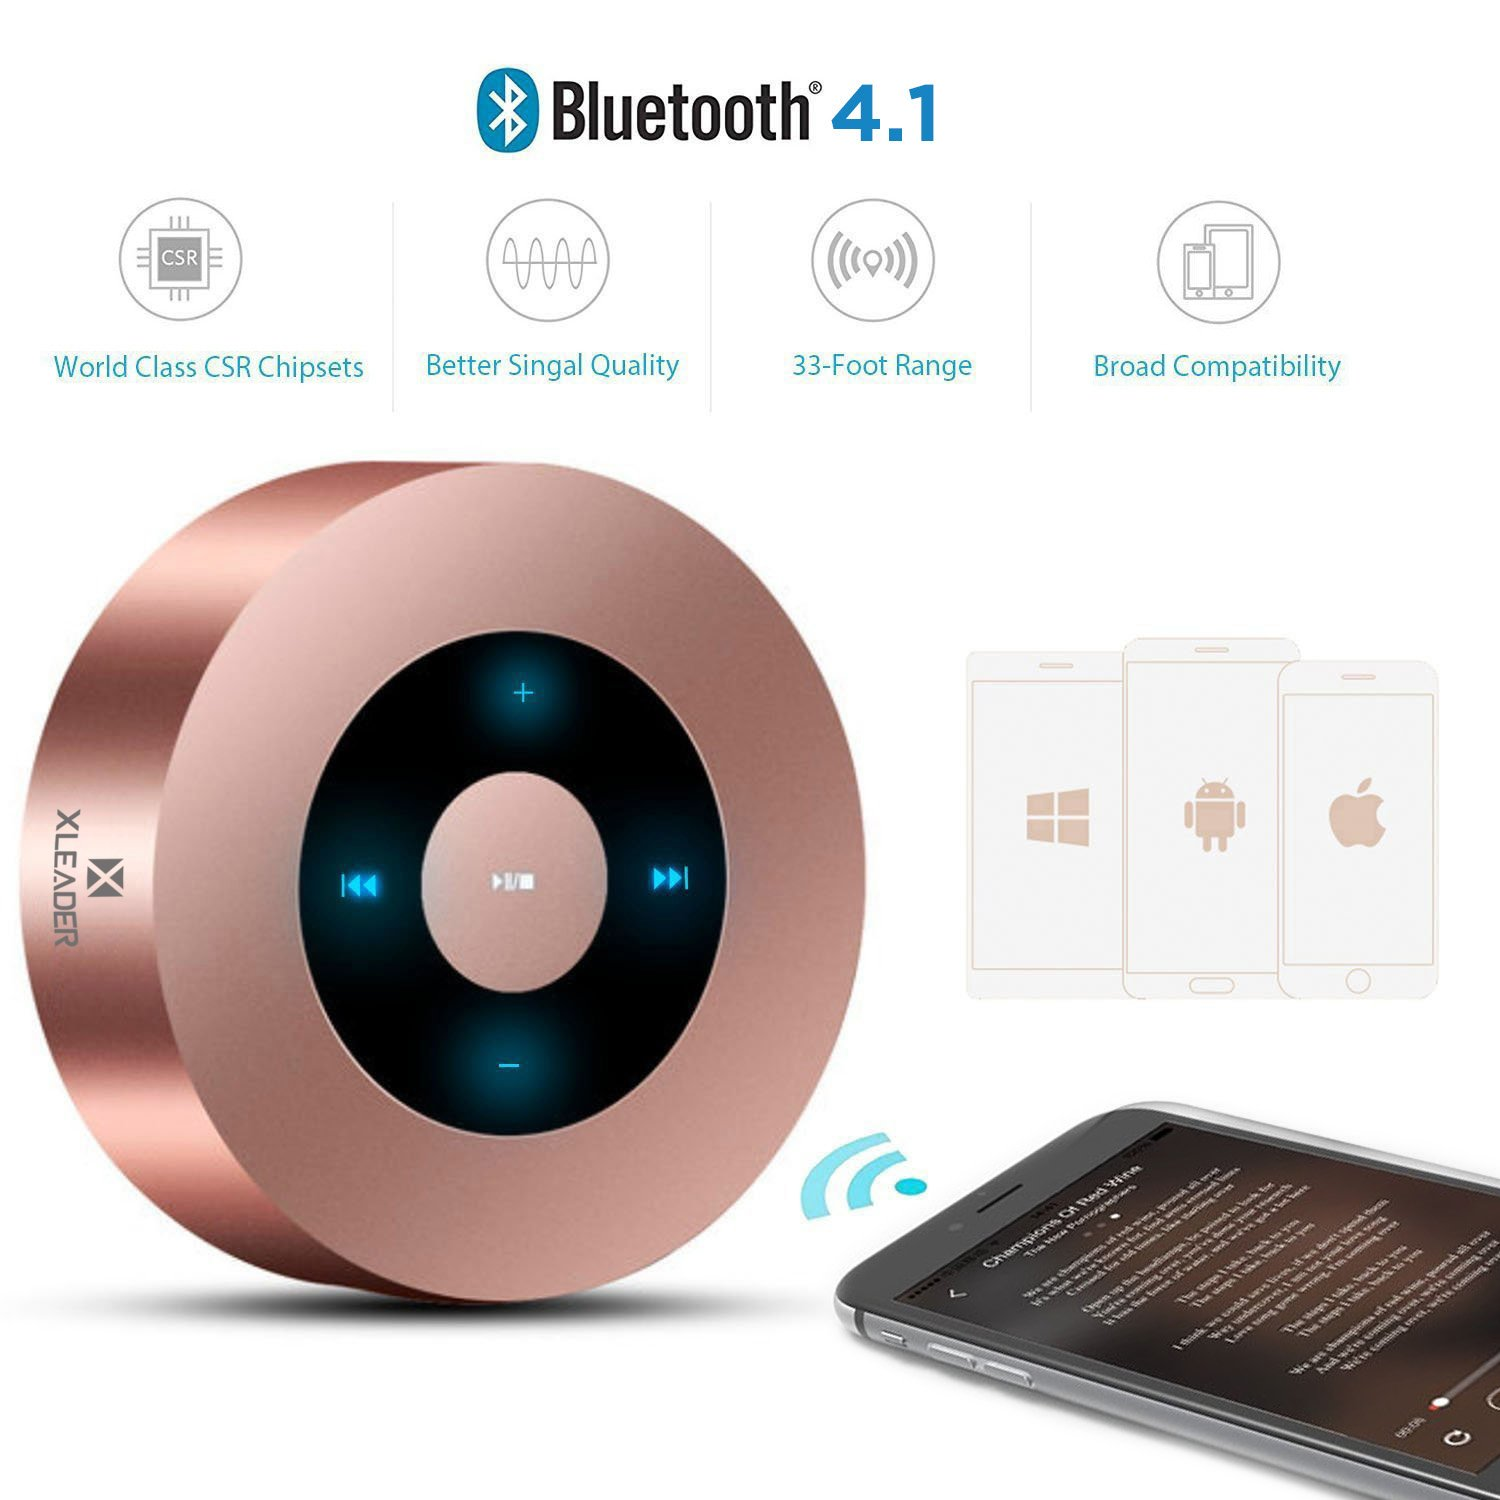 Bluetooth Speaker Black XLEADER Portable Wireless Speakers with HD Sound // 12-Hour Playtime//Bluetooth 4.1 // Micro SD Support for iPhone//ipad//Samsung//Tablet//Laptop//Echo dot LED Touch Design